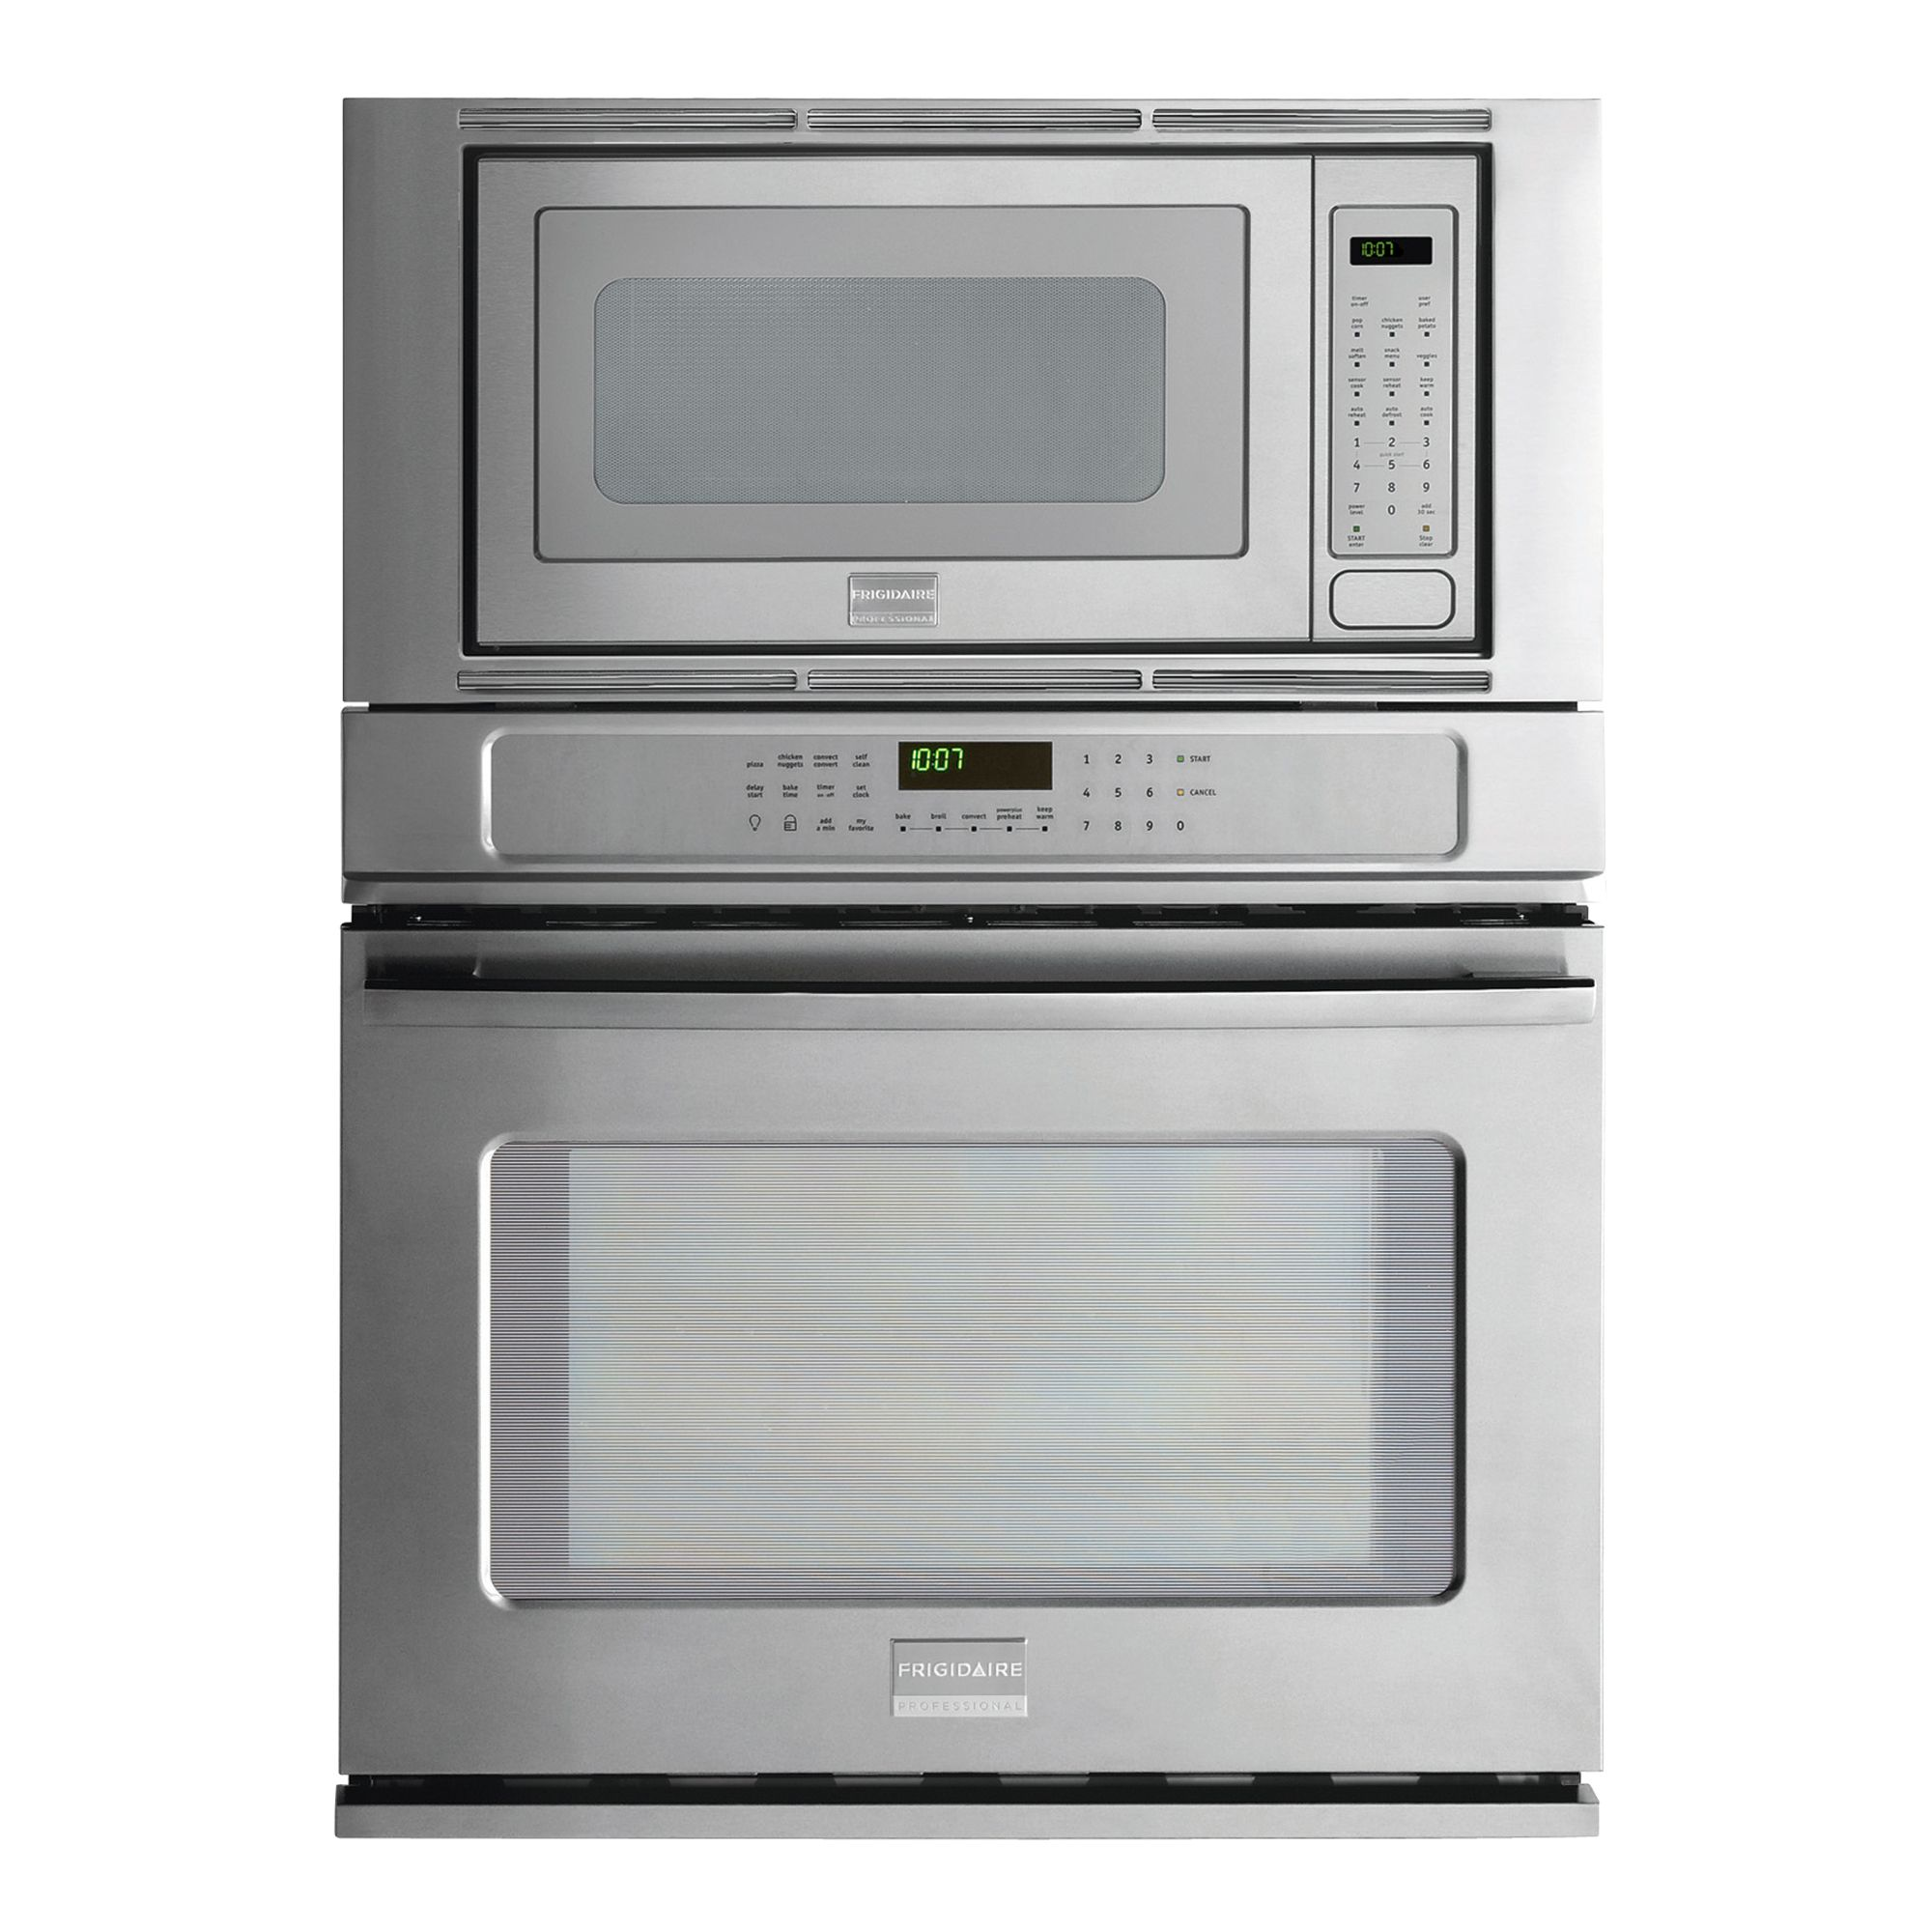 Bosch Microwave Bosch Microwave Combination Oven Manual